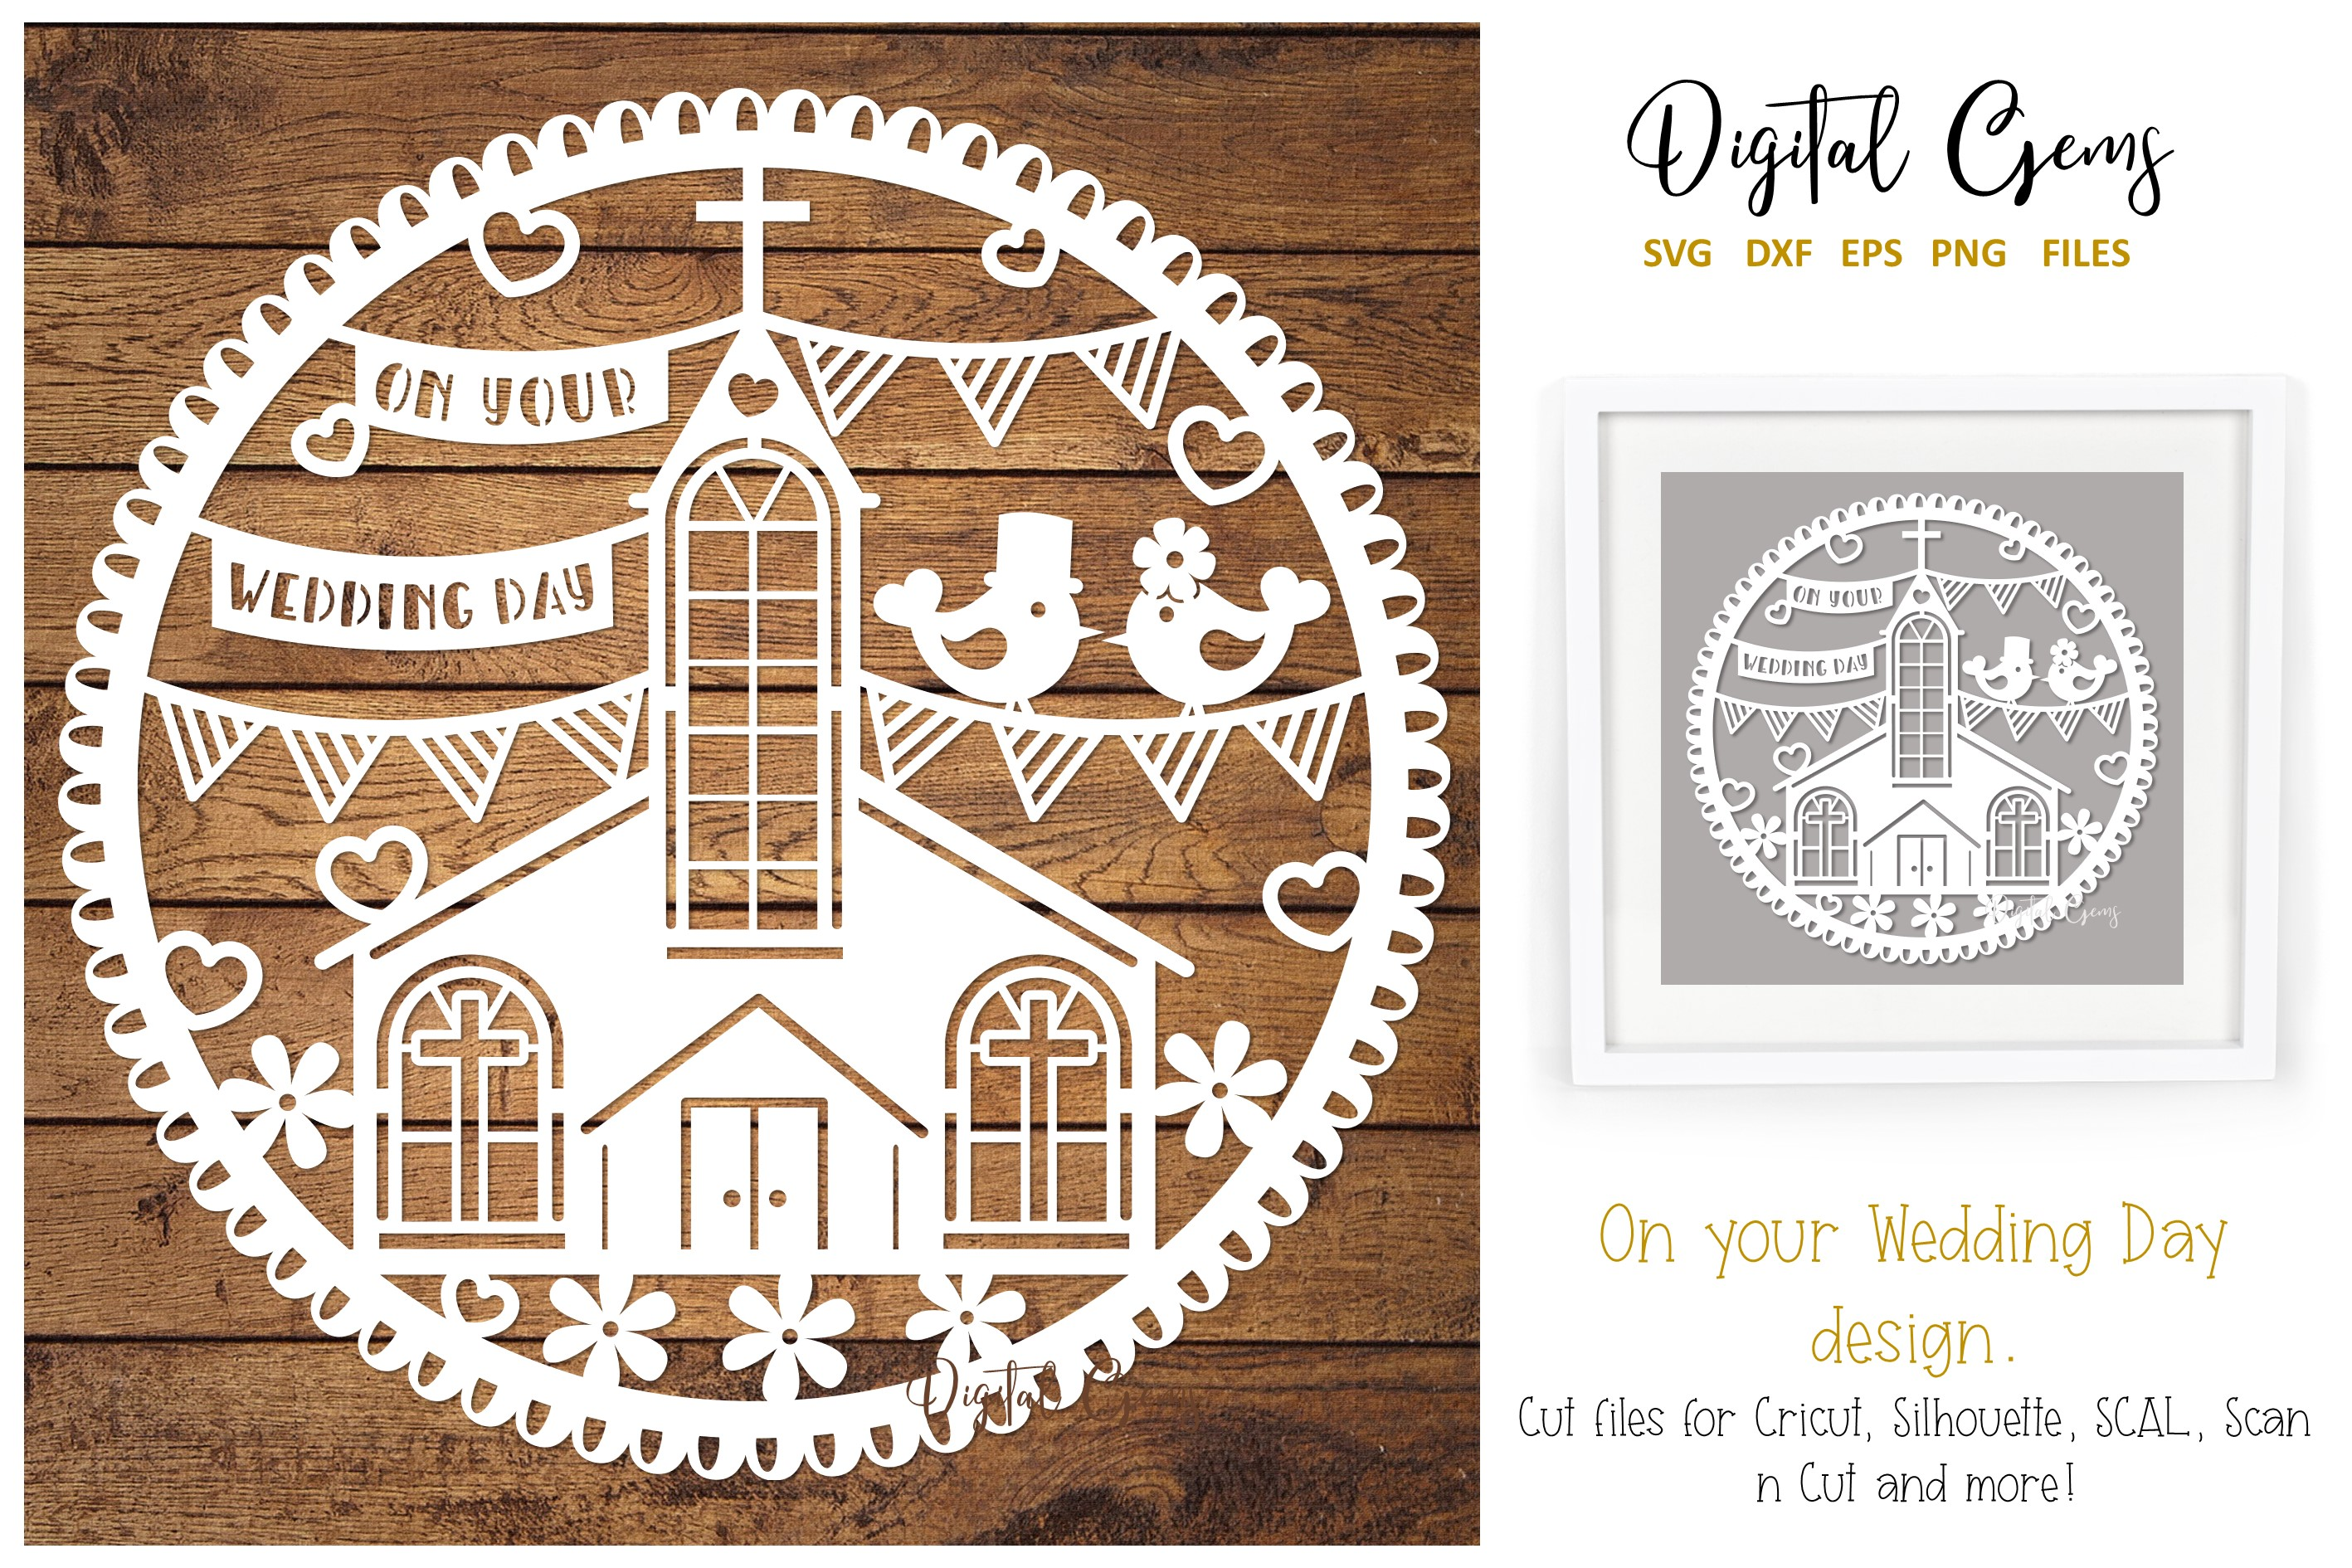 Download Free Wedding Design Graphic By Digital Gems Creative Fabrica for Cricut Explore, Silhouette and other cutting machines.